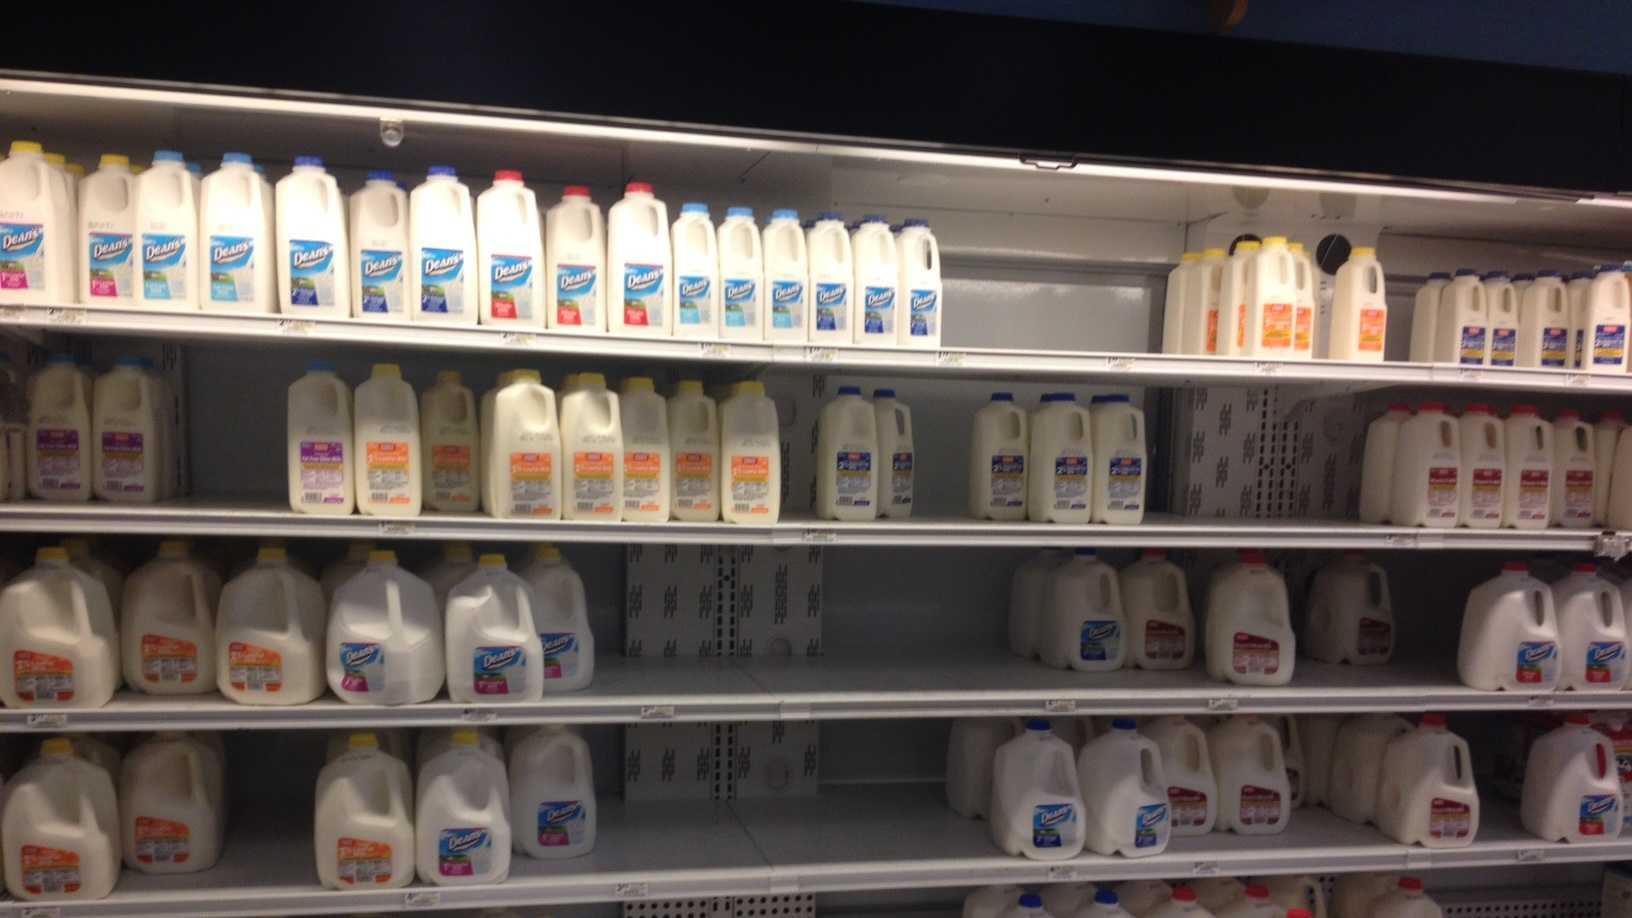 Milk was a popular item at a Giant Eagle in Monroeville